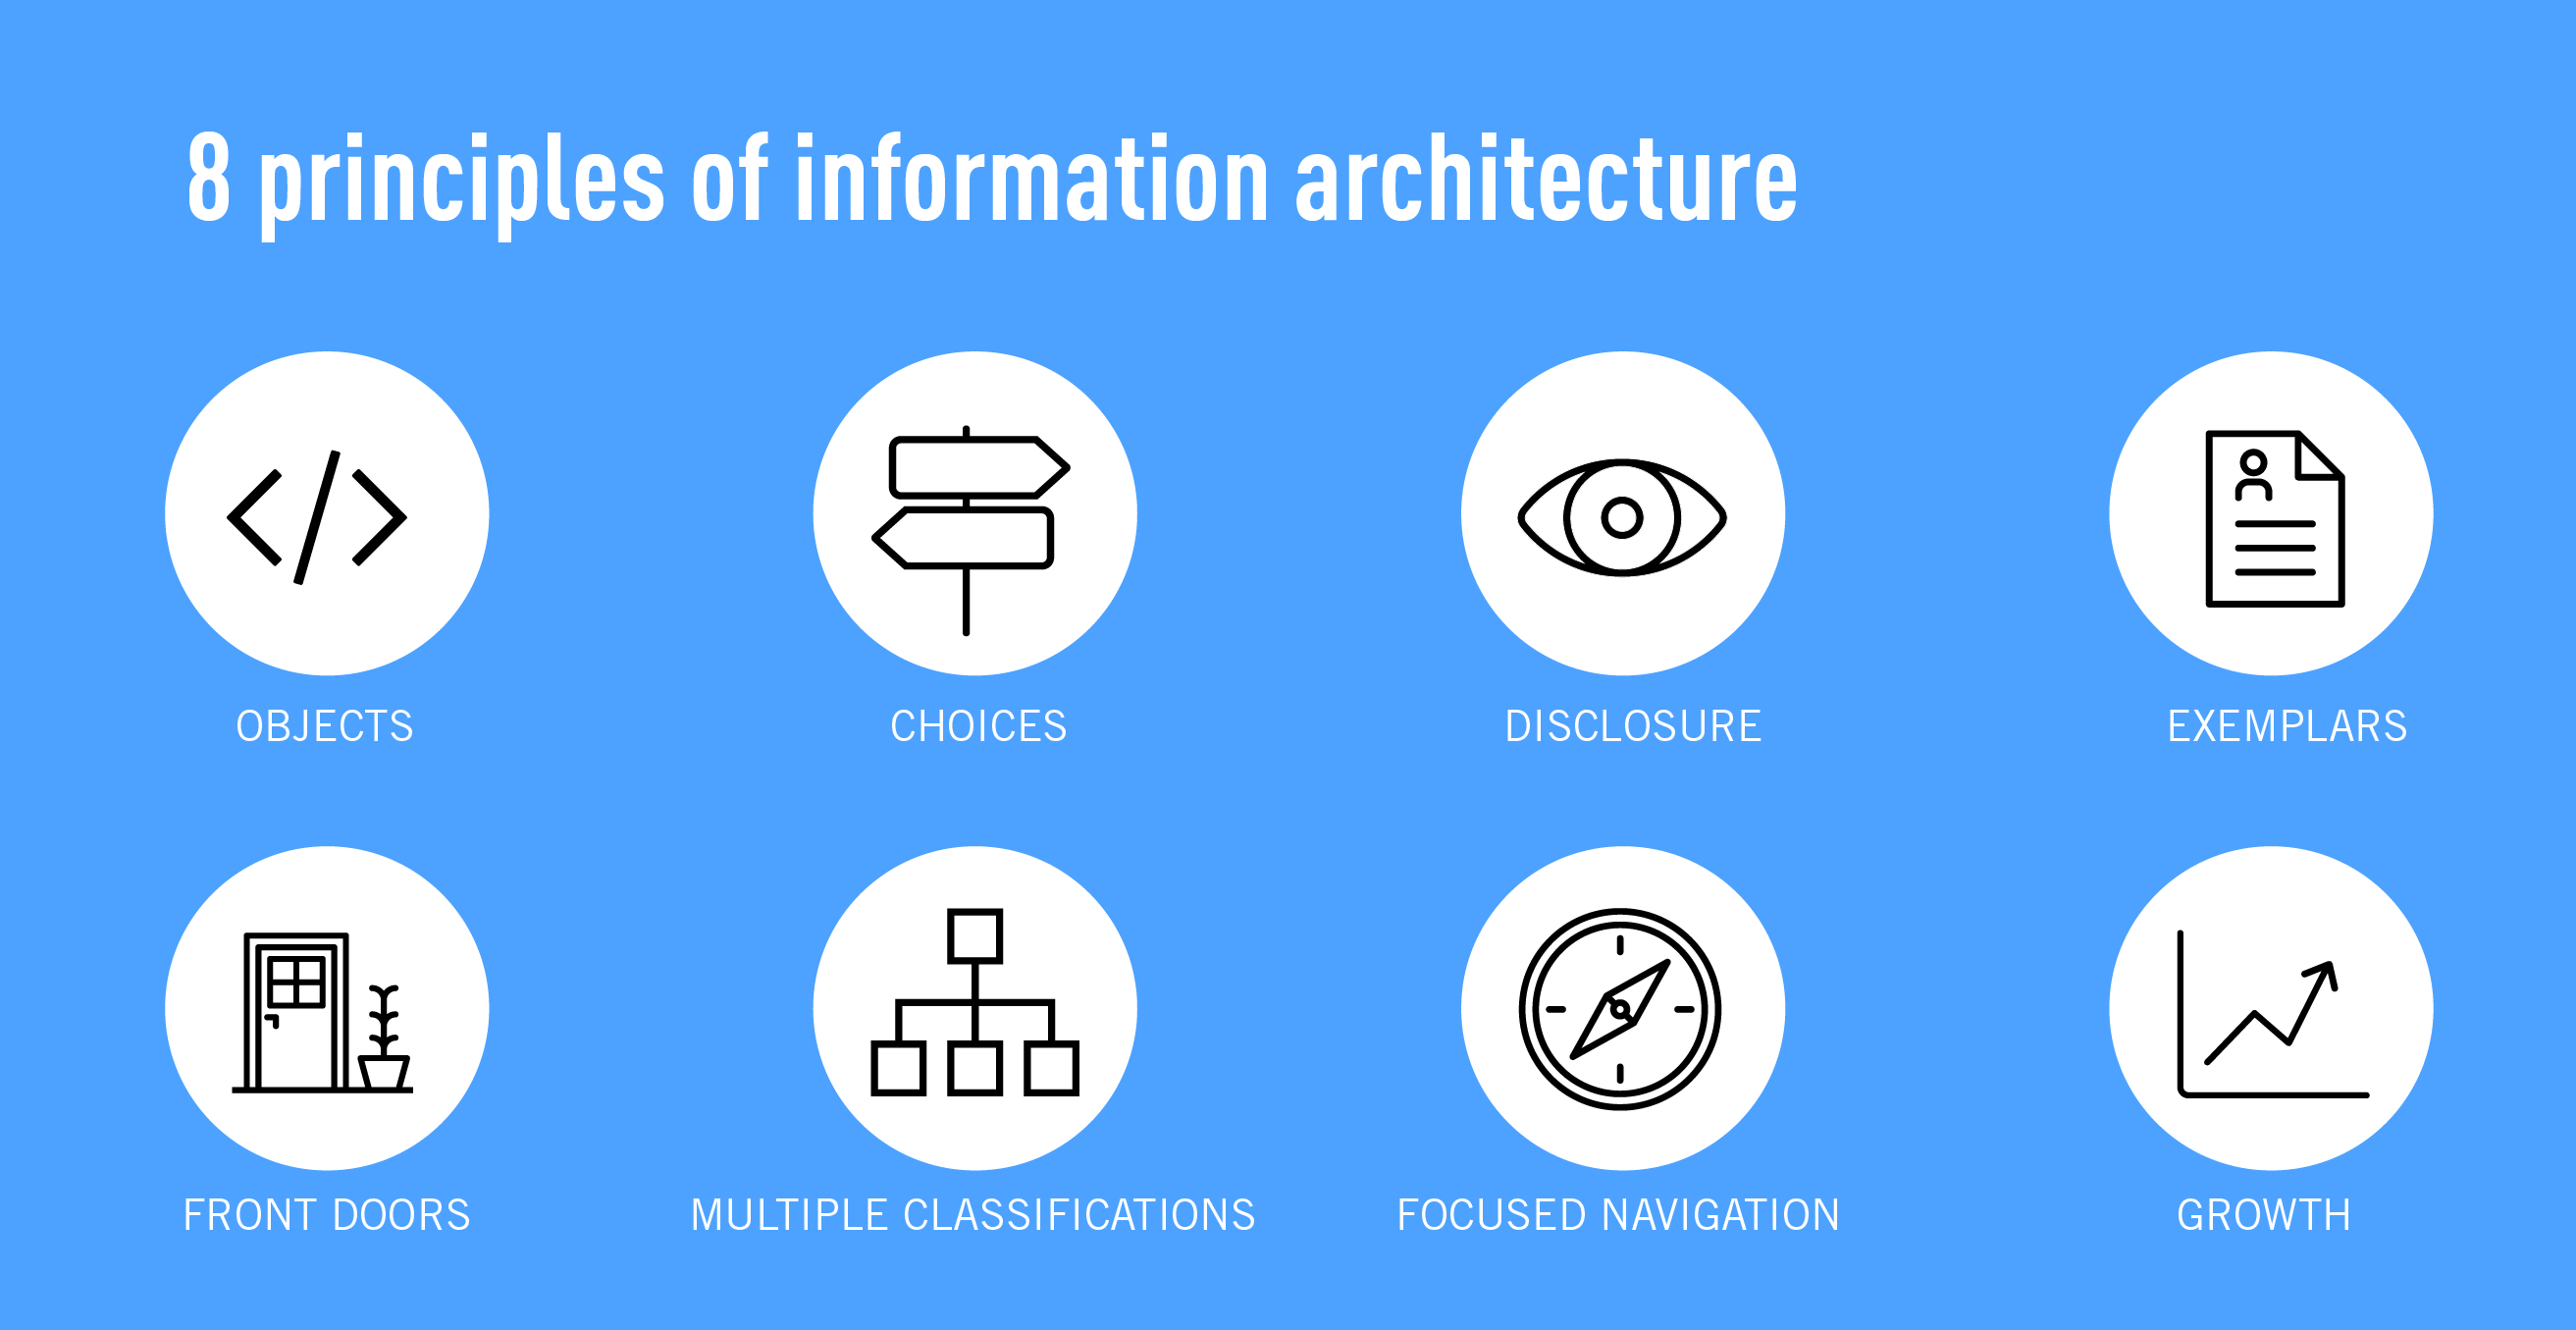 The eight principles of information architecture